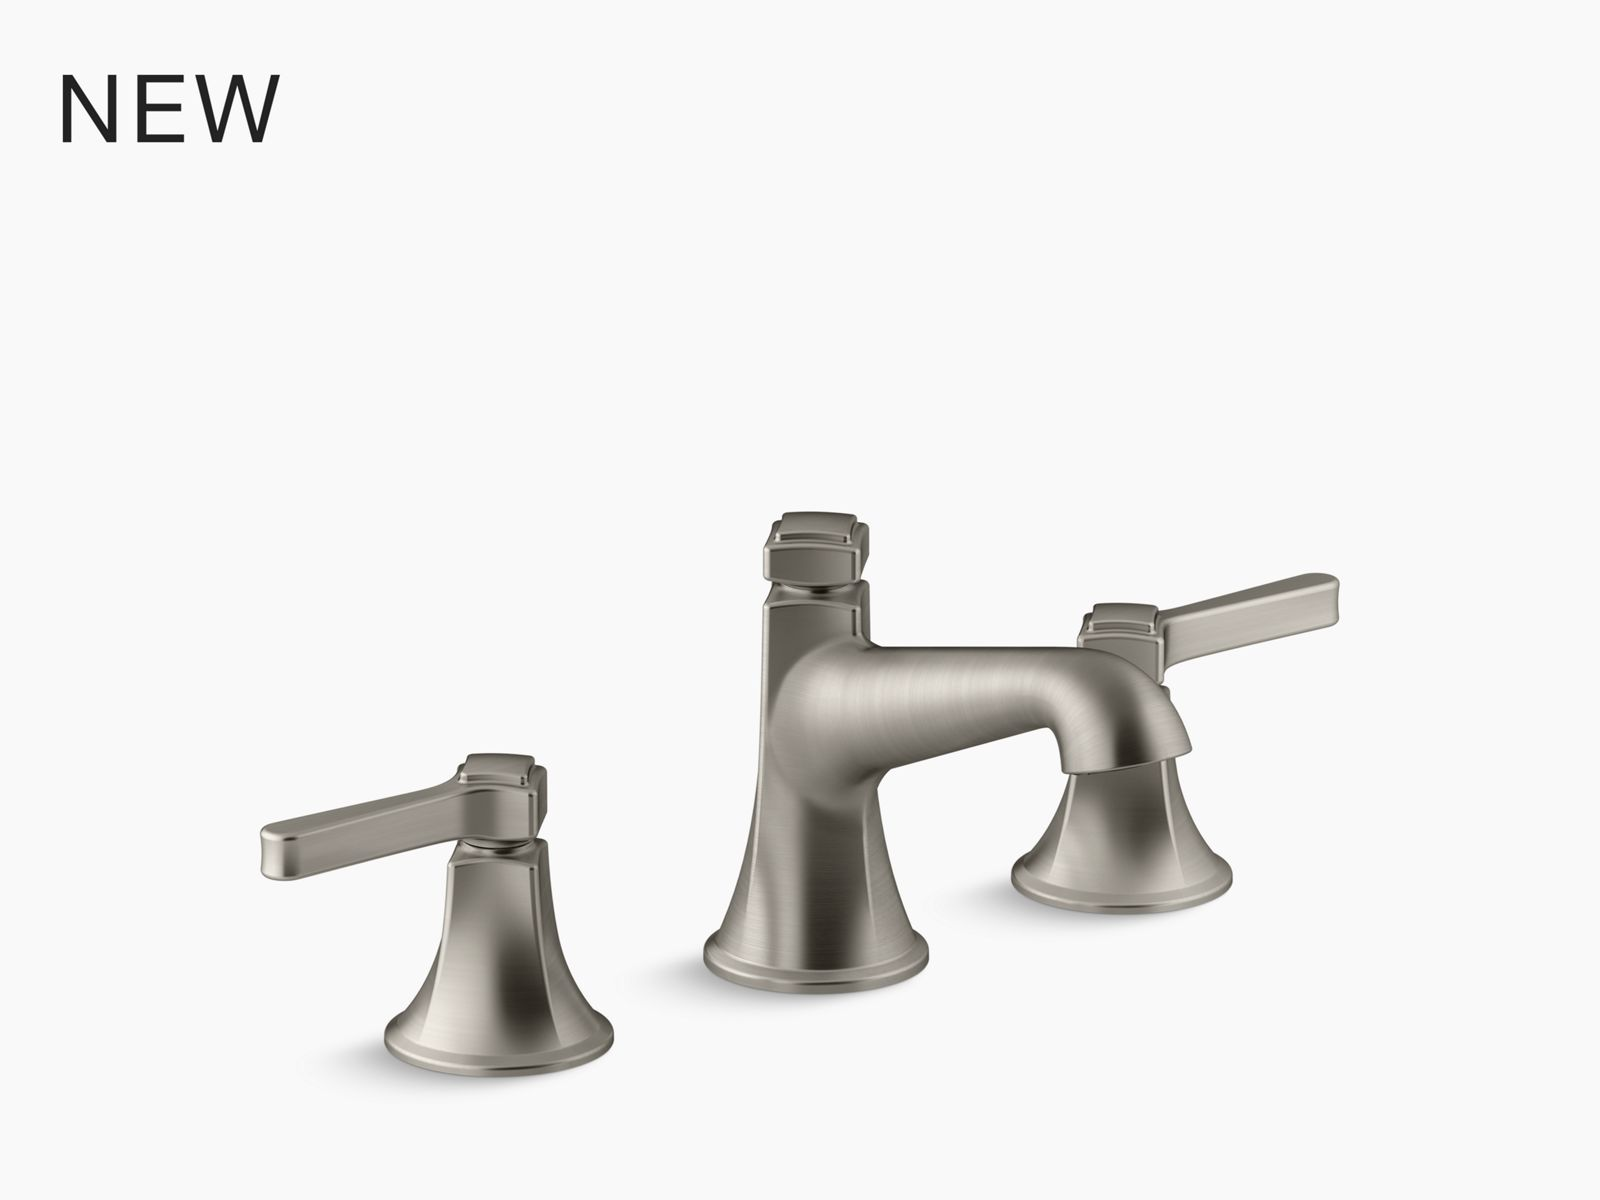 iron impressions 43 vanity top bathroom sink with 8 widespread faucet holes